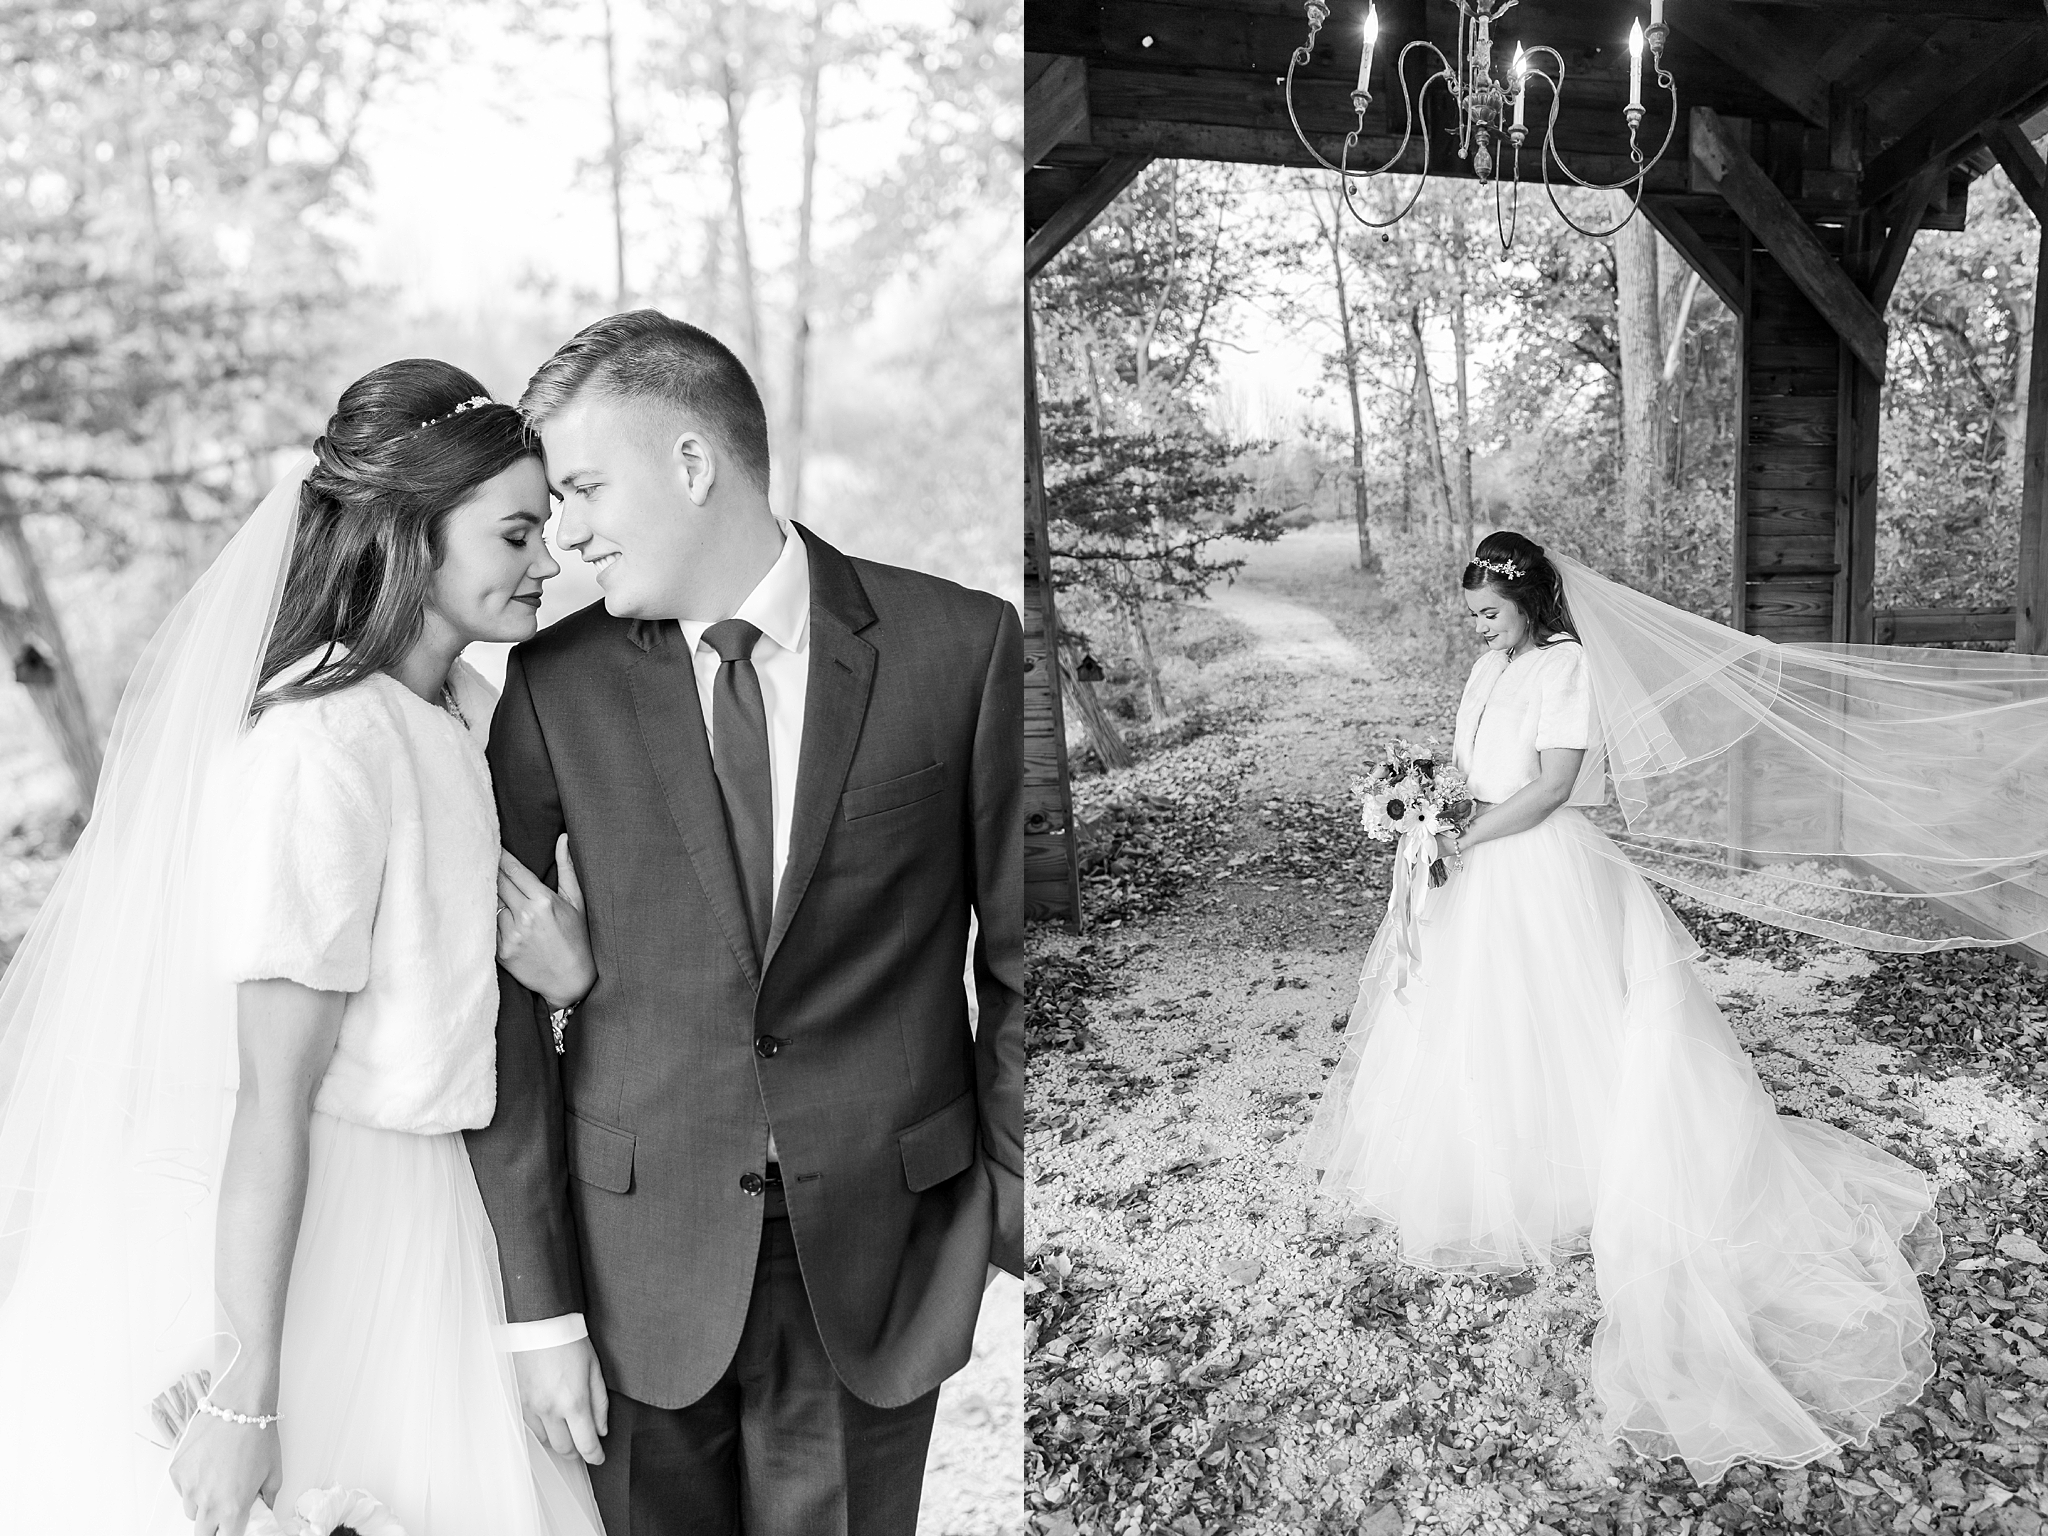 rustic-whimsical-wedding-photos-the-vale-royal-barn-in-fenton-michigan-by-courtney-carolyn-photography_0028.jpg